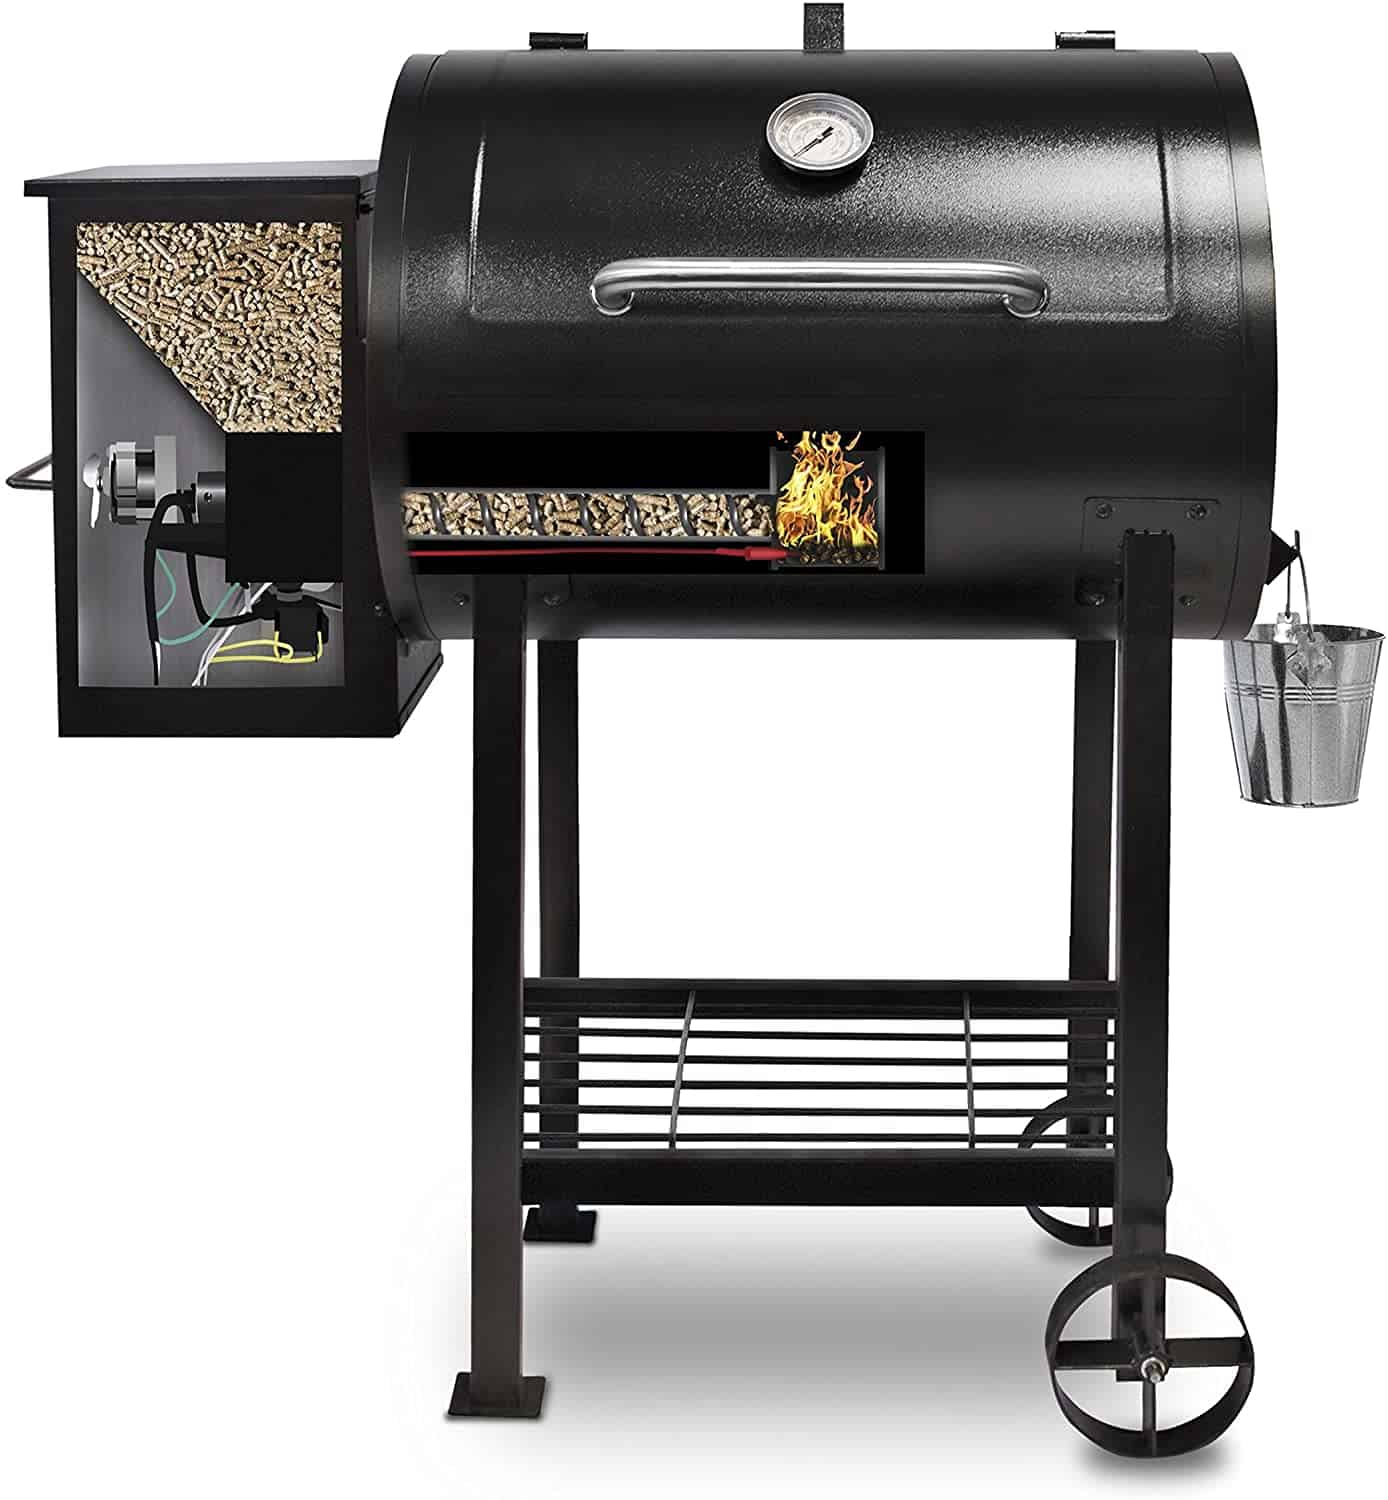 Best Pellet grill with flame broiler: Pit Boss Grills PB72700S